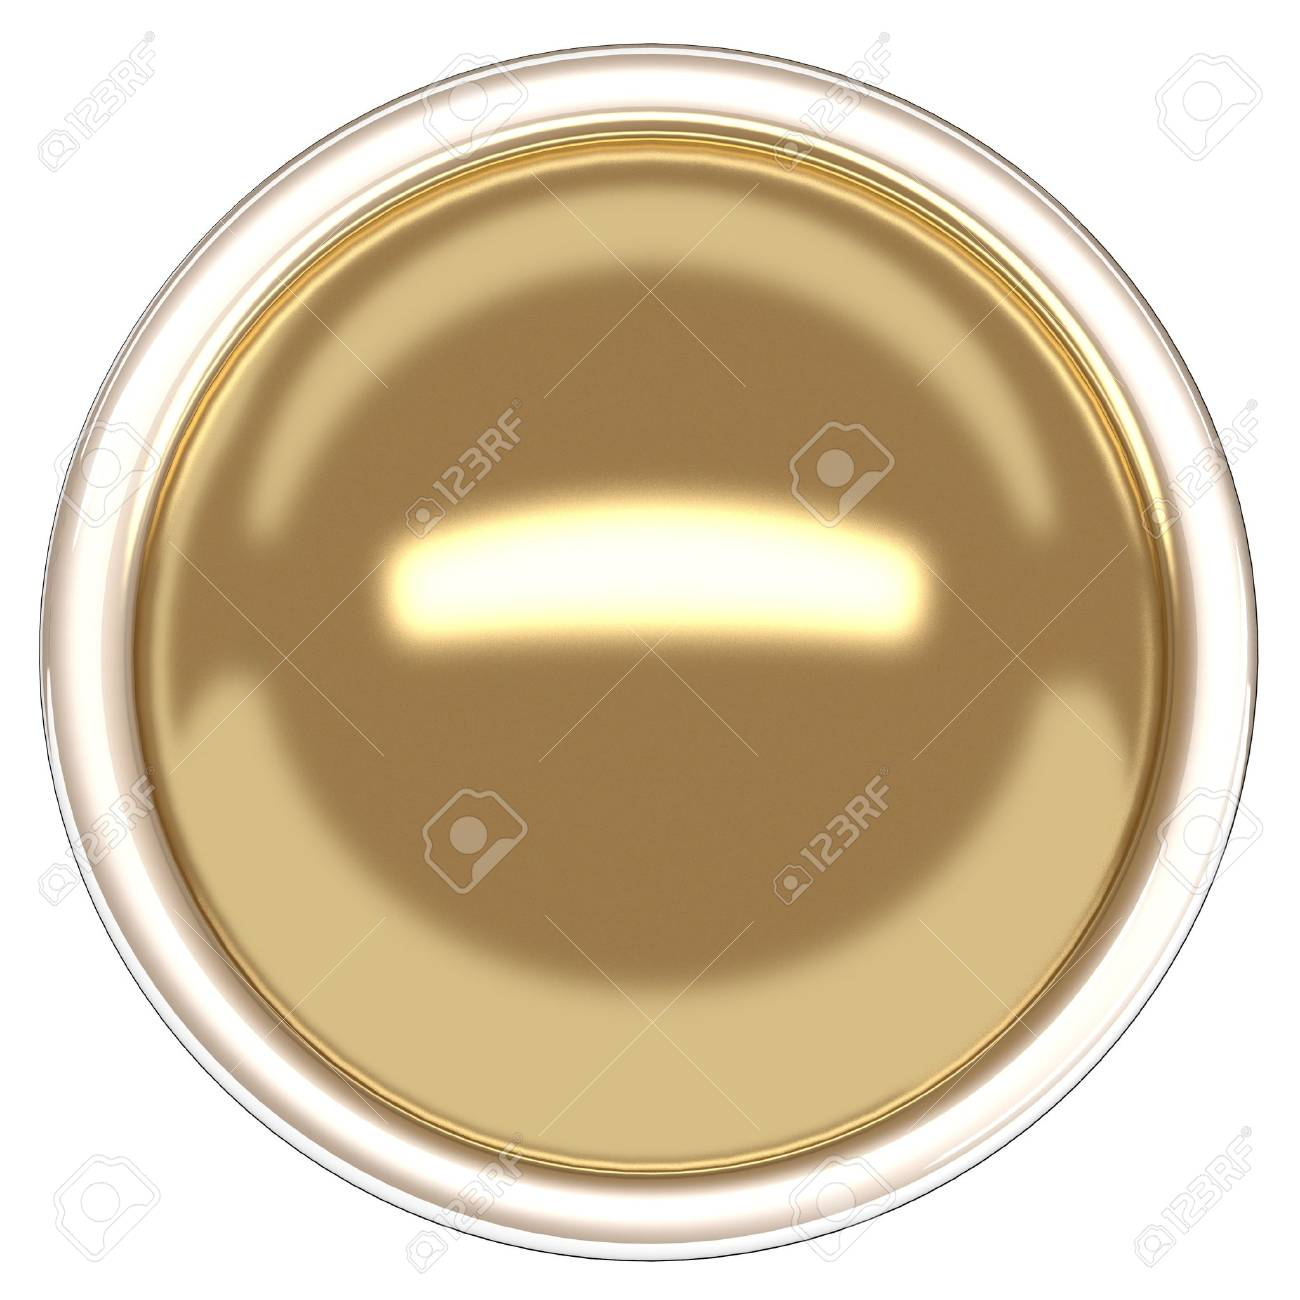 Gold sphere and ring. Gold button Stock Photo - 20119609